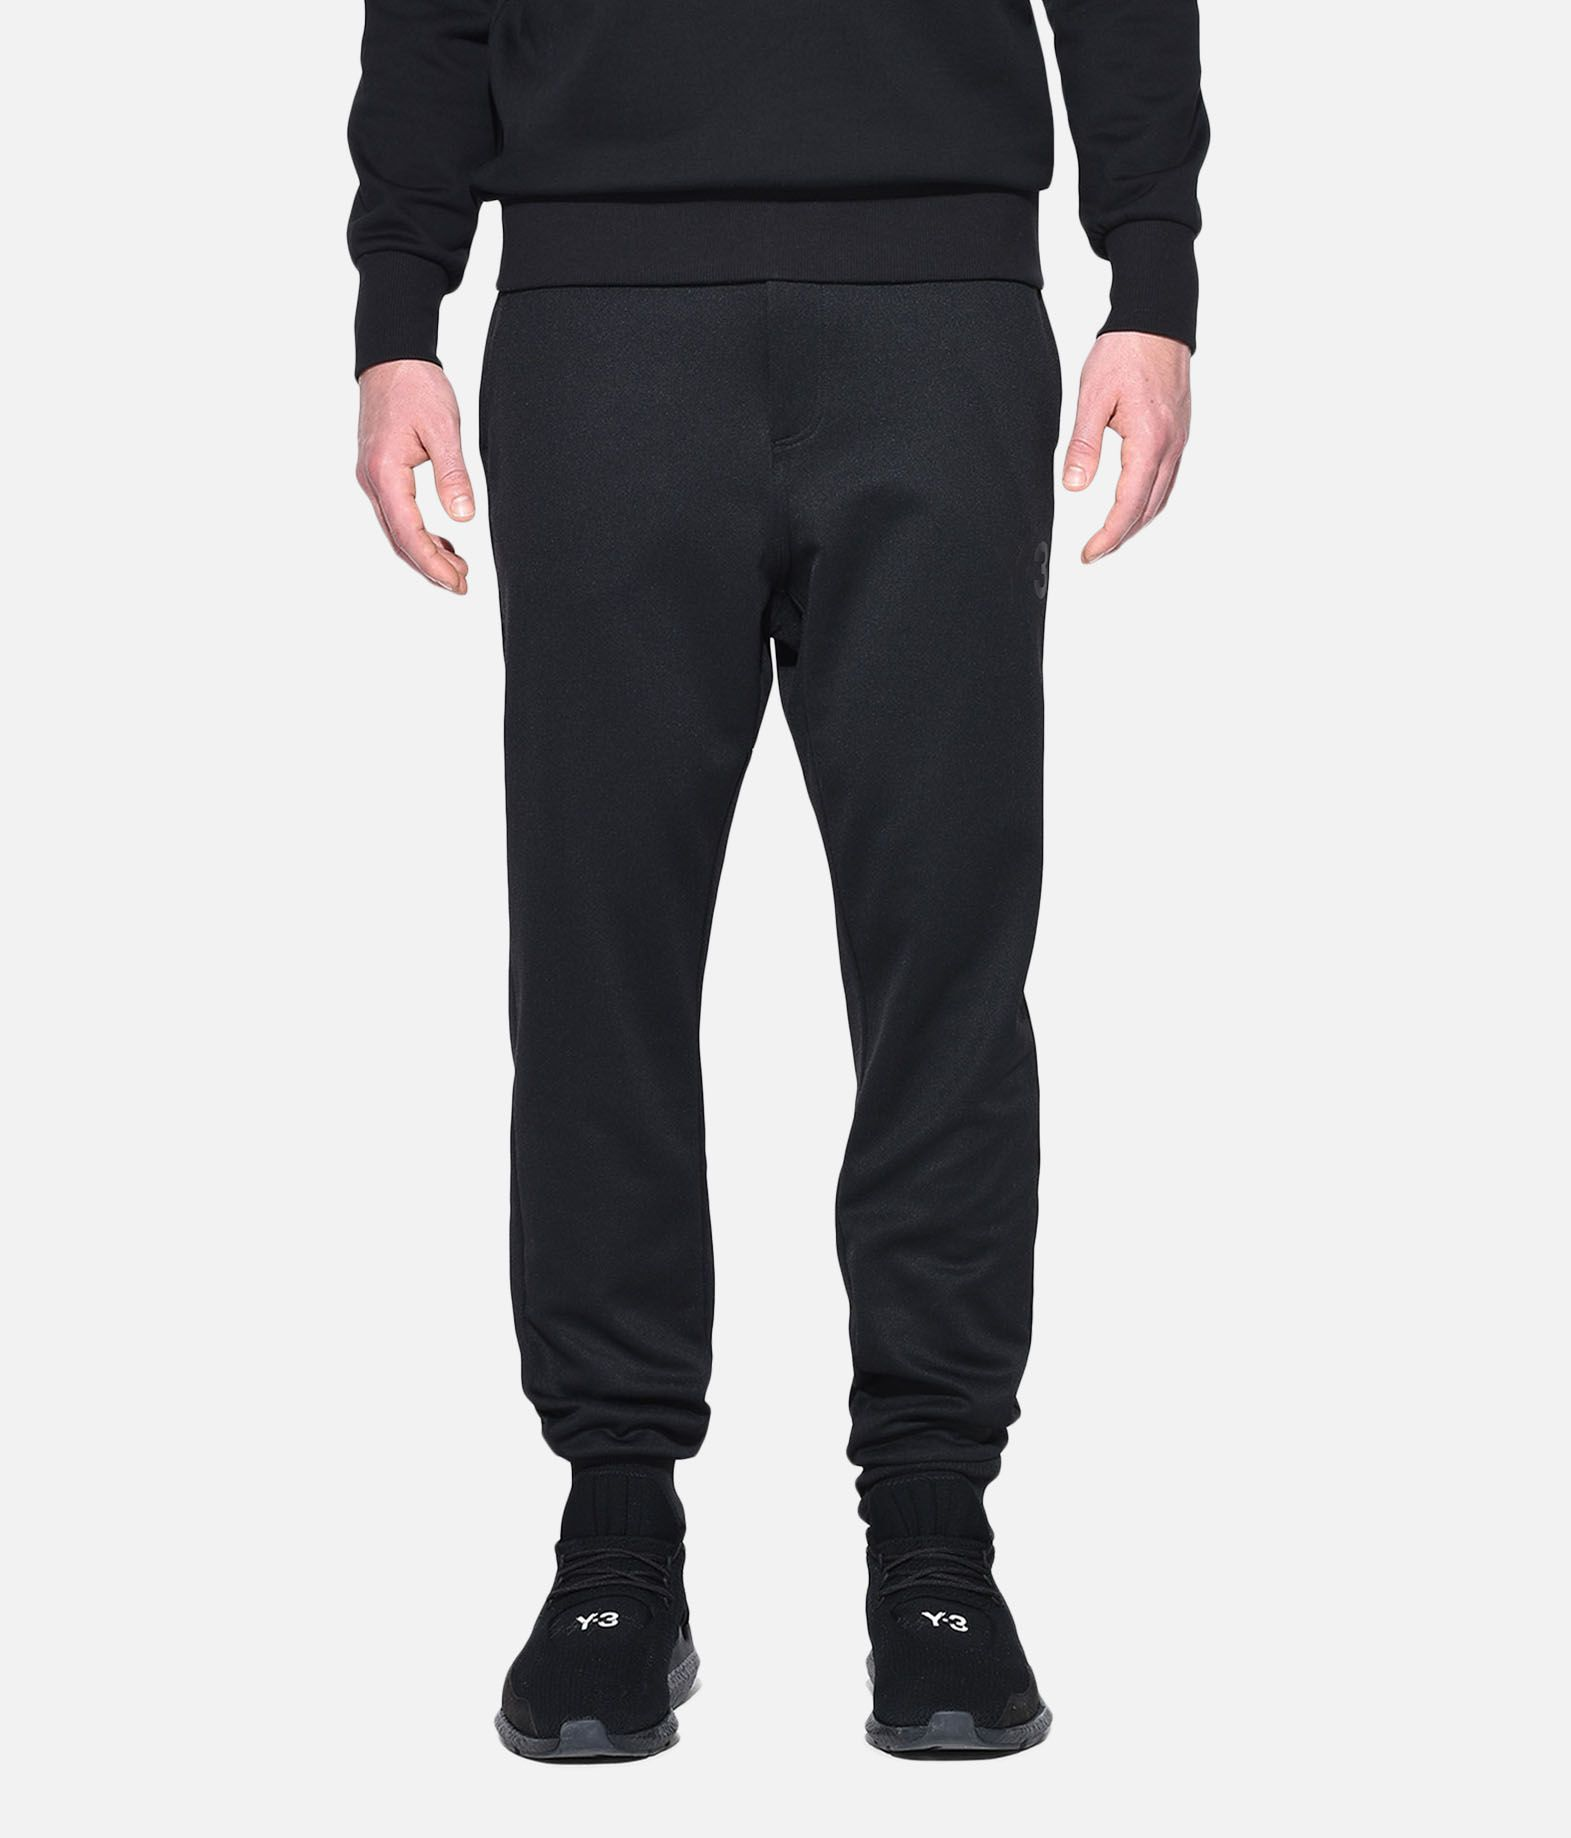 Y-3 Y-3 CLASSIC TRACK PANTS Track pant Homme r